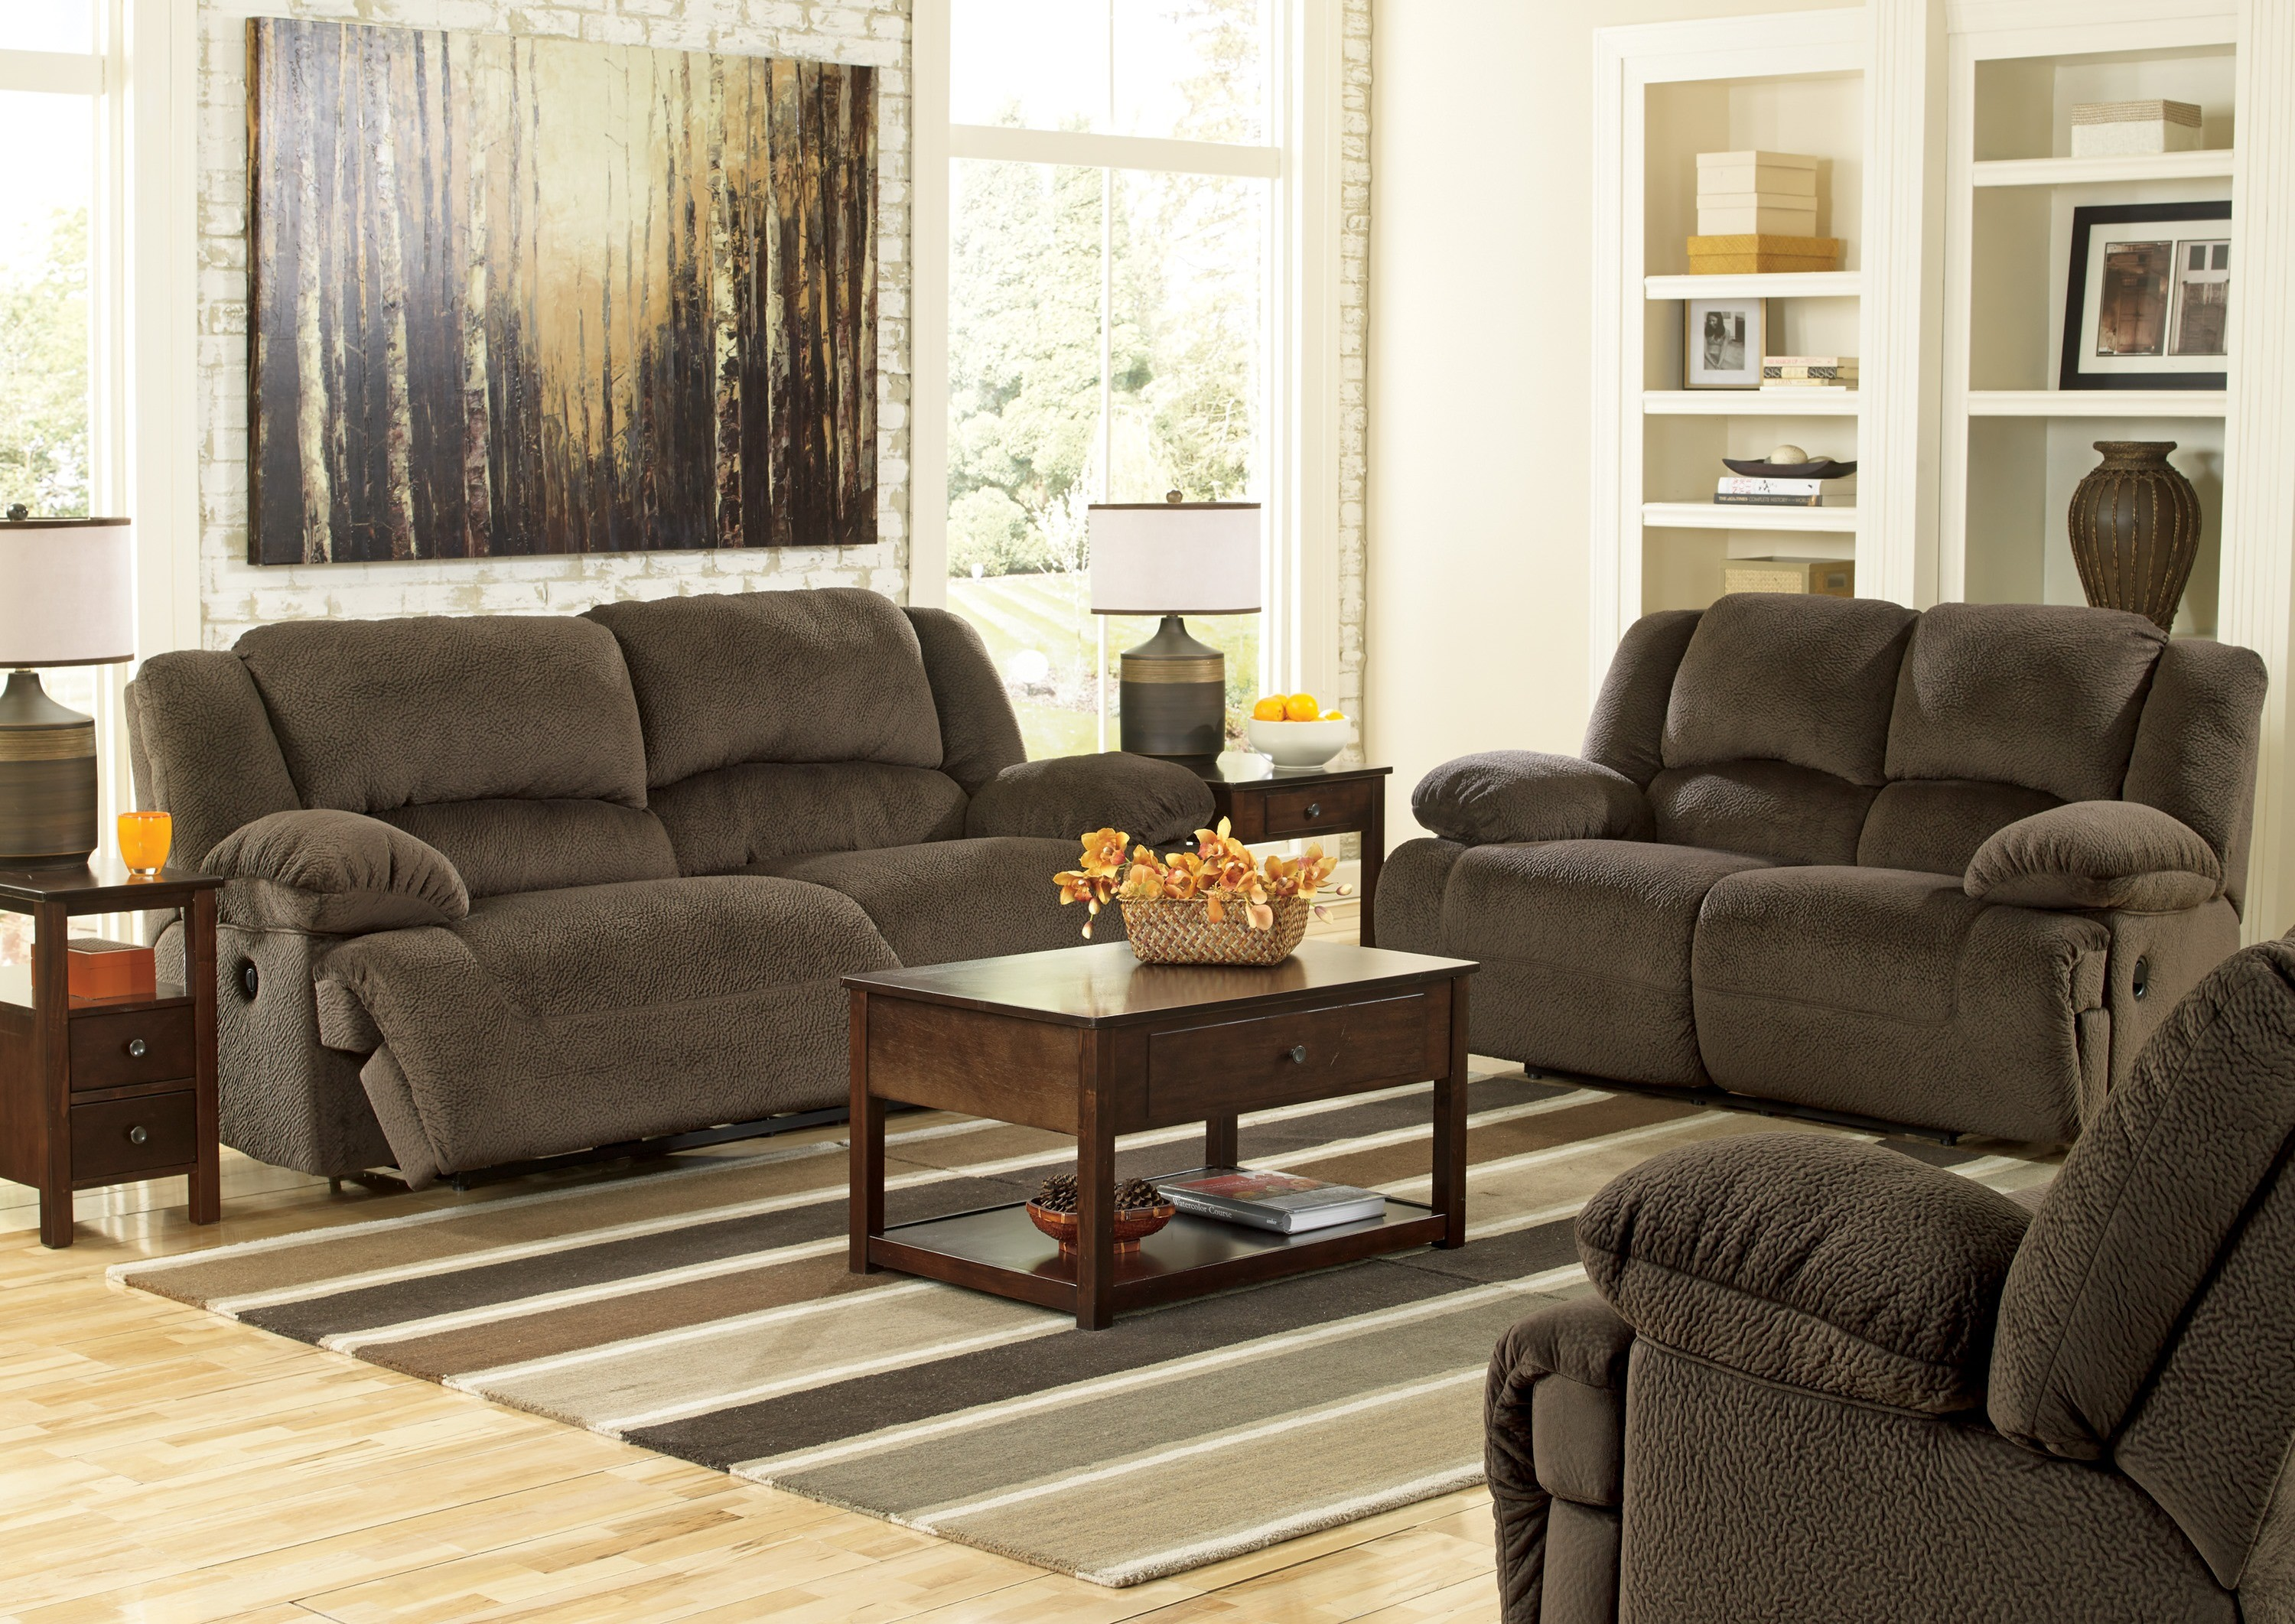 Toletta Chocolate Living Room Set From Ashley (5670181-86